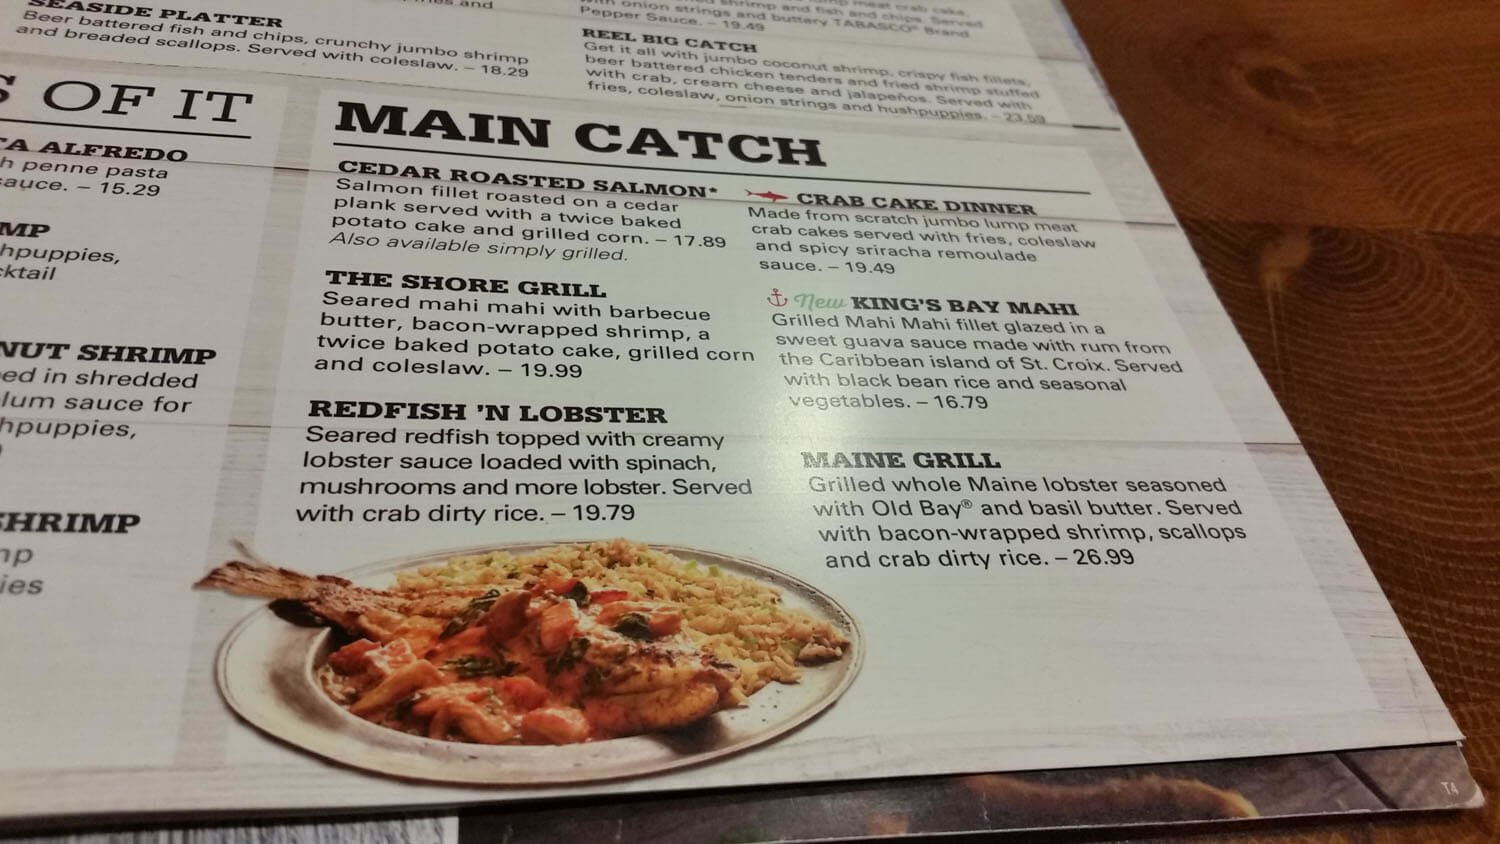 Joe's Crab Shack Menu – 10